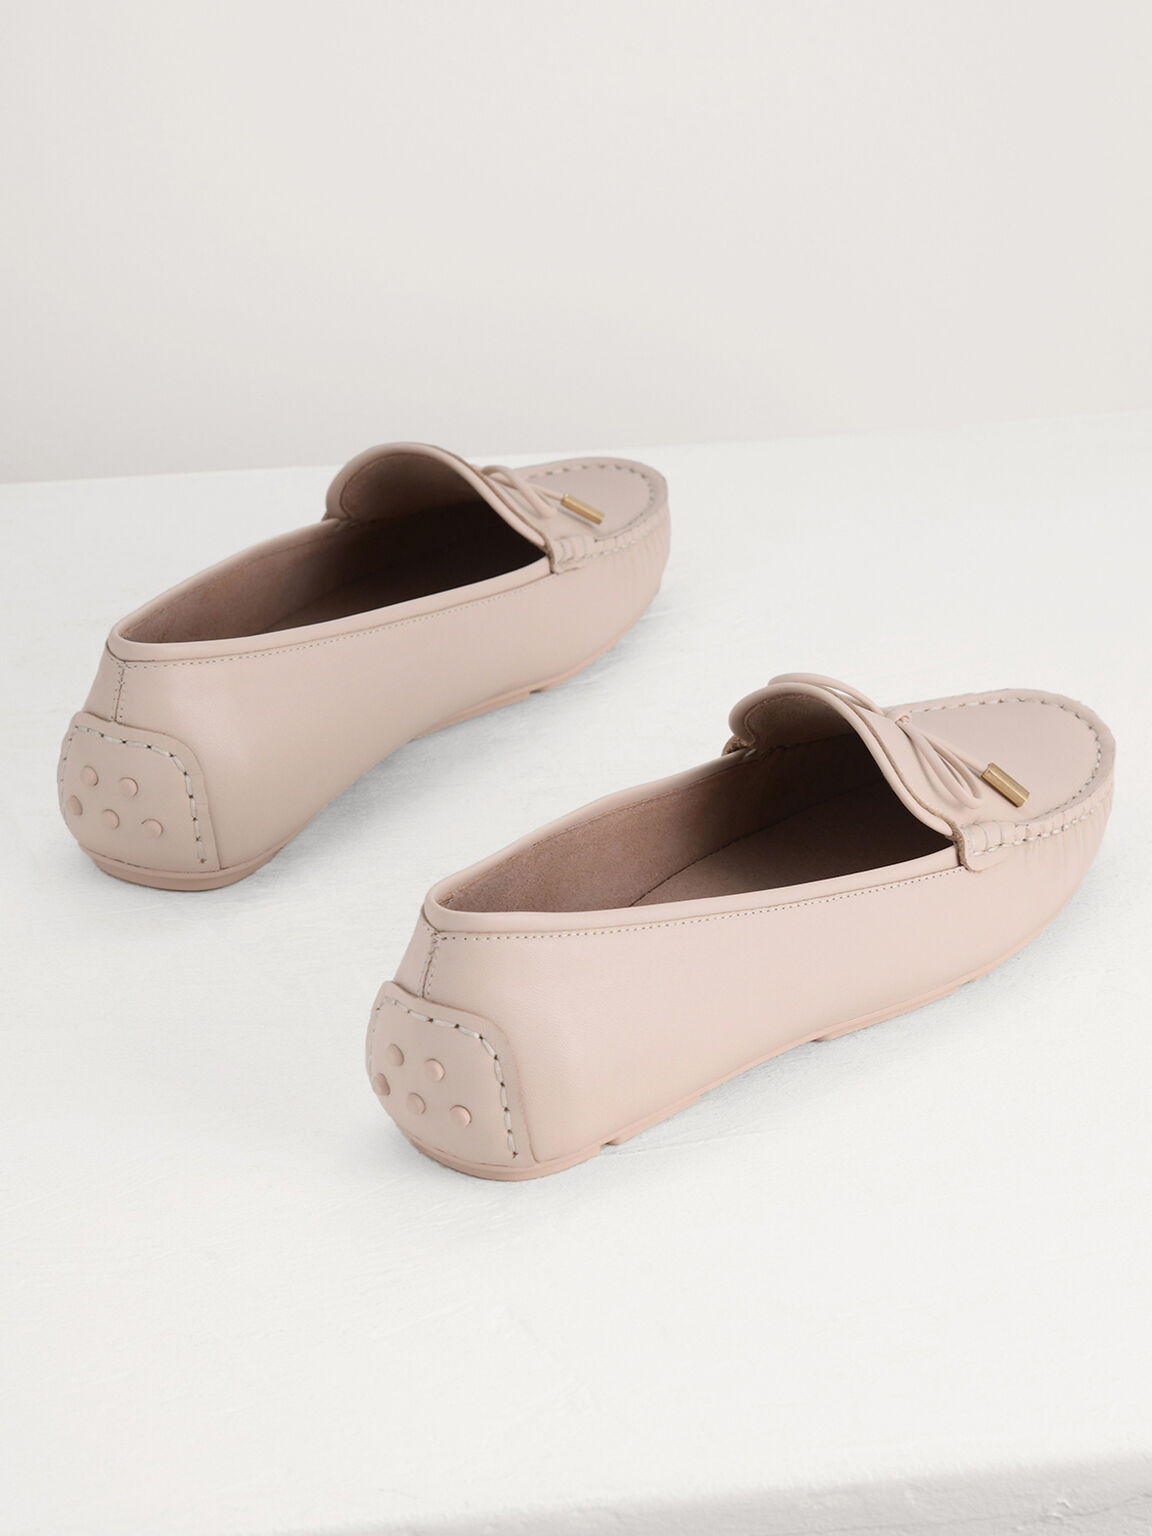 Leather Bow Moccasins, Cream, hi-res